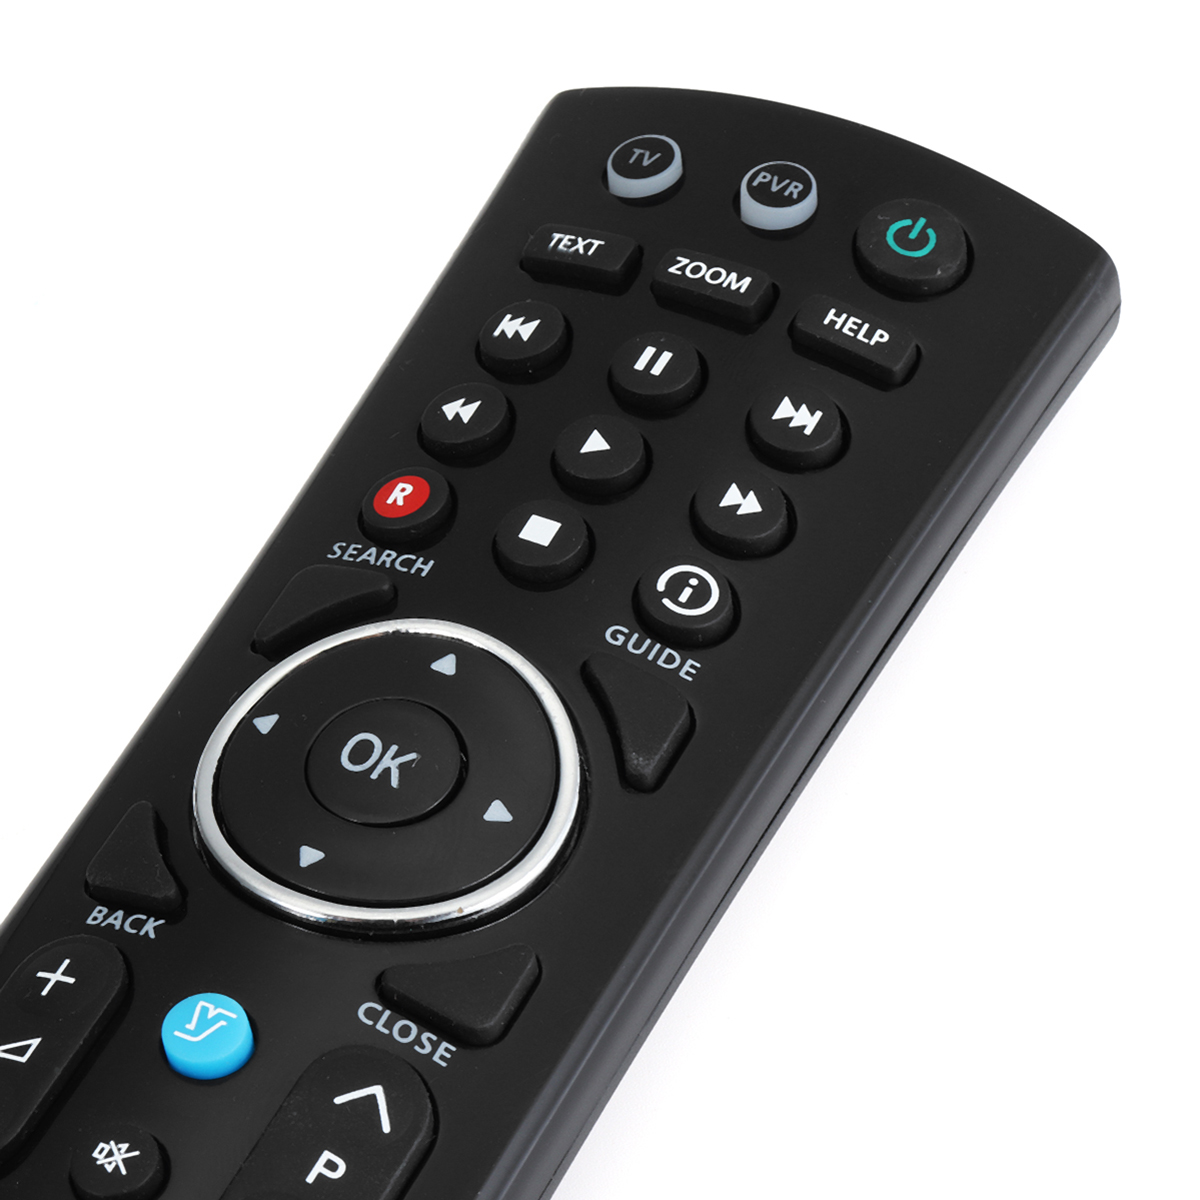 Universal Remote Control Transmitter Youview Remote Control for Humax DTR-T1000 DTR-T1010 DTR-T2000